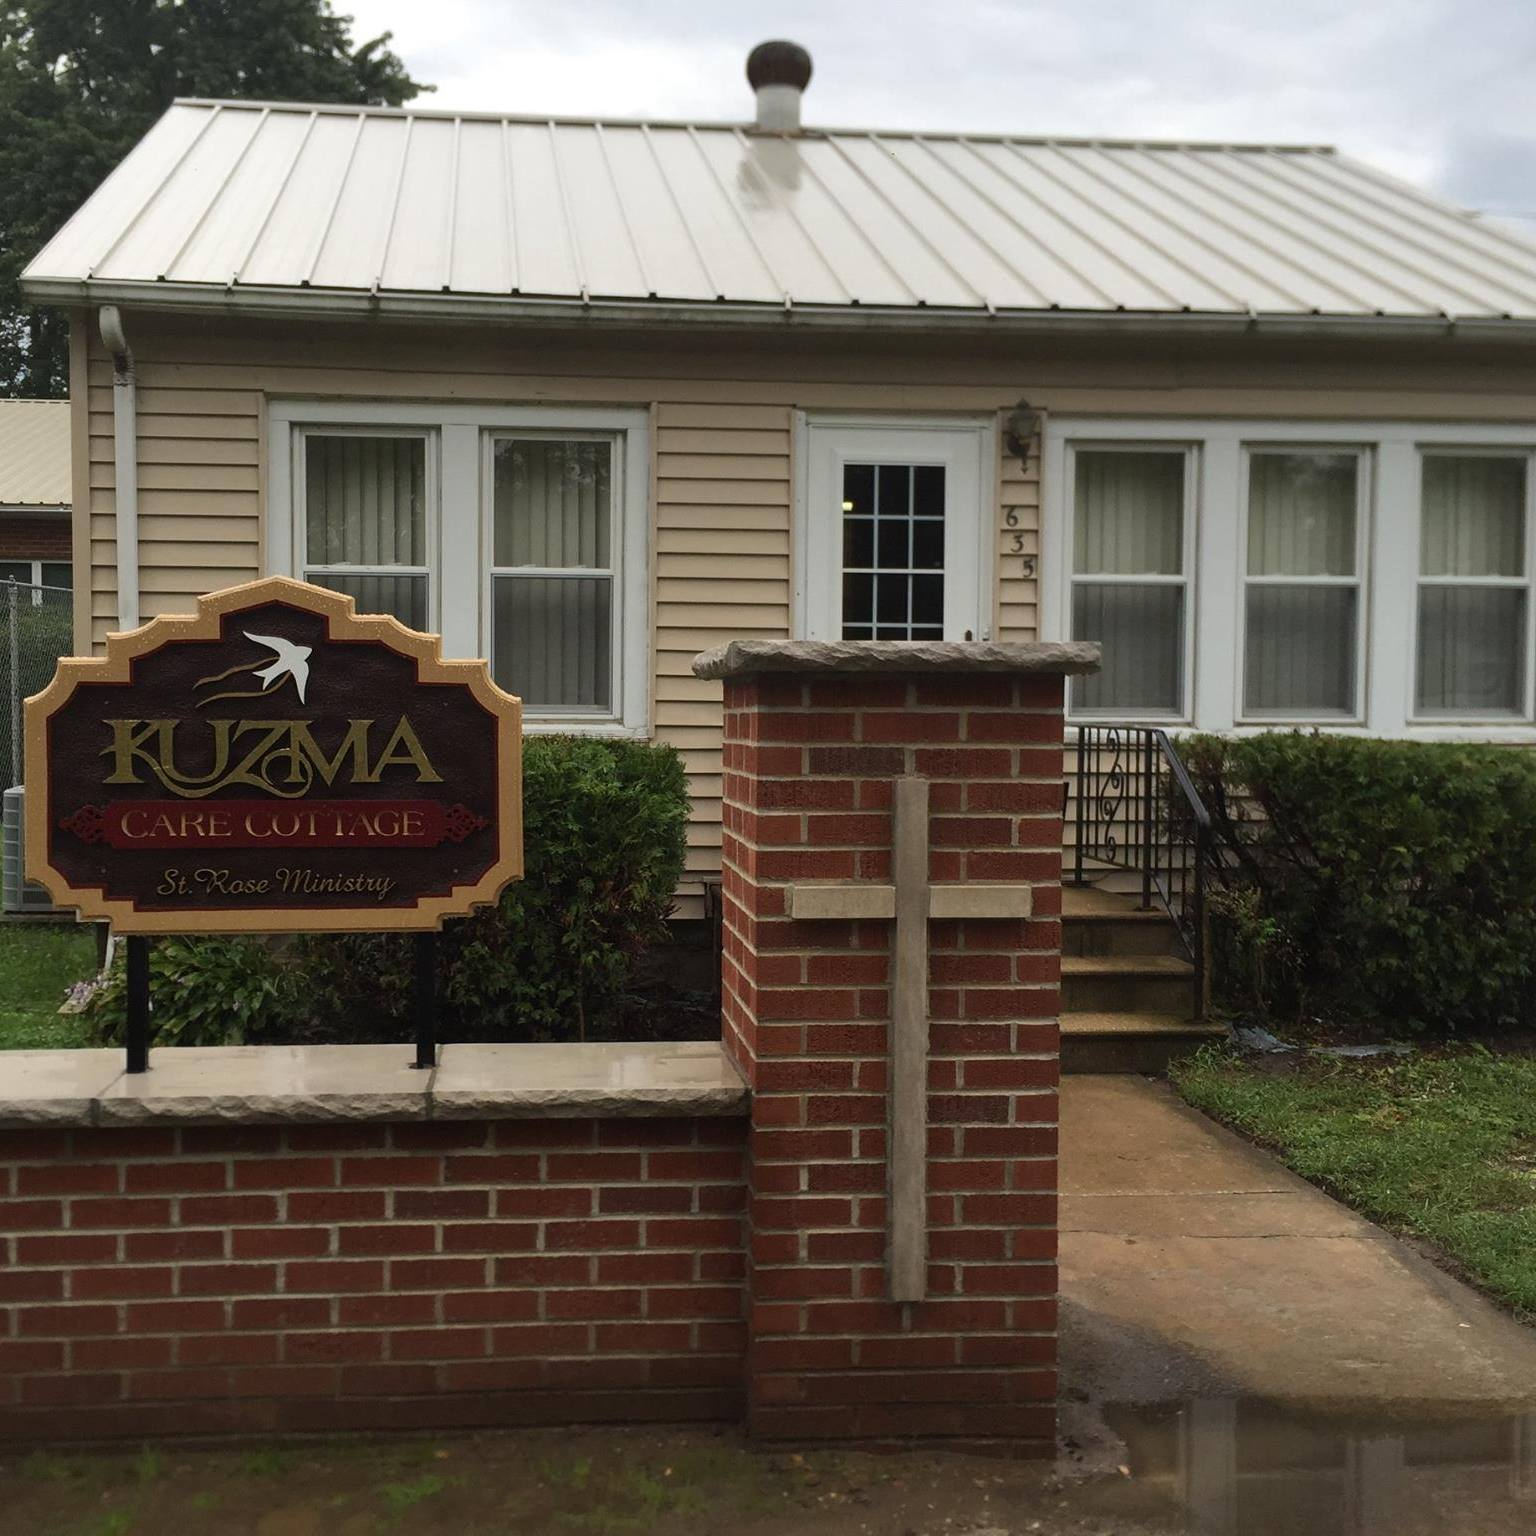 Kuzma Care Cottage